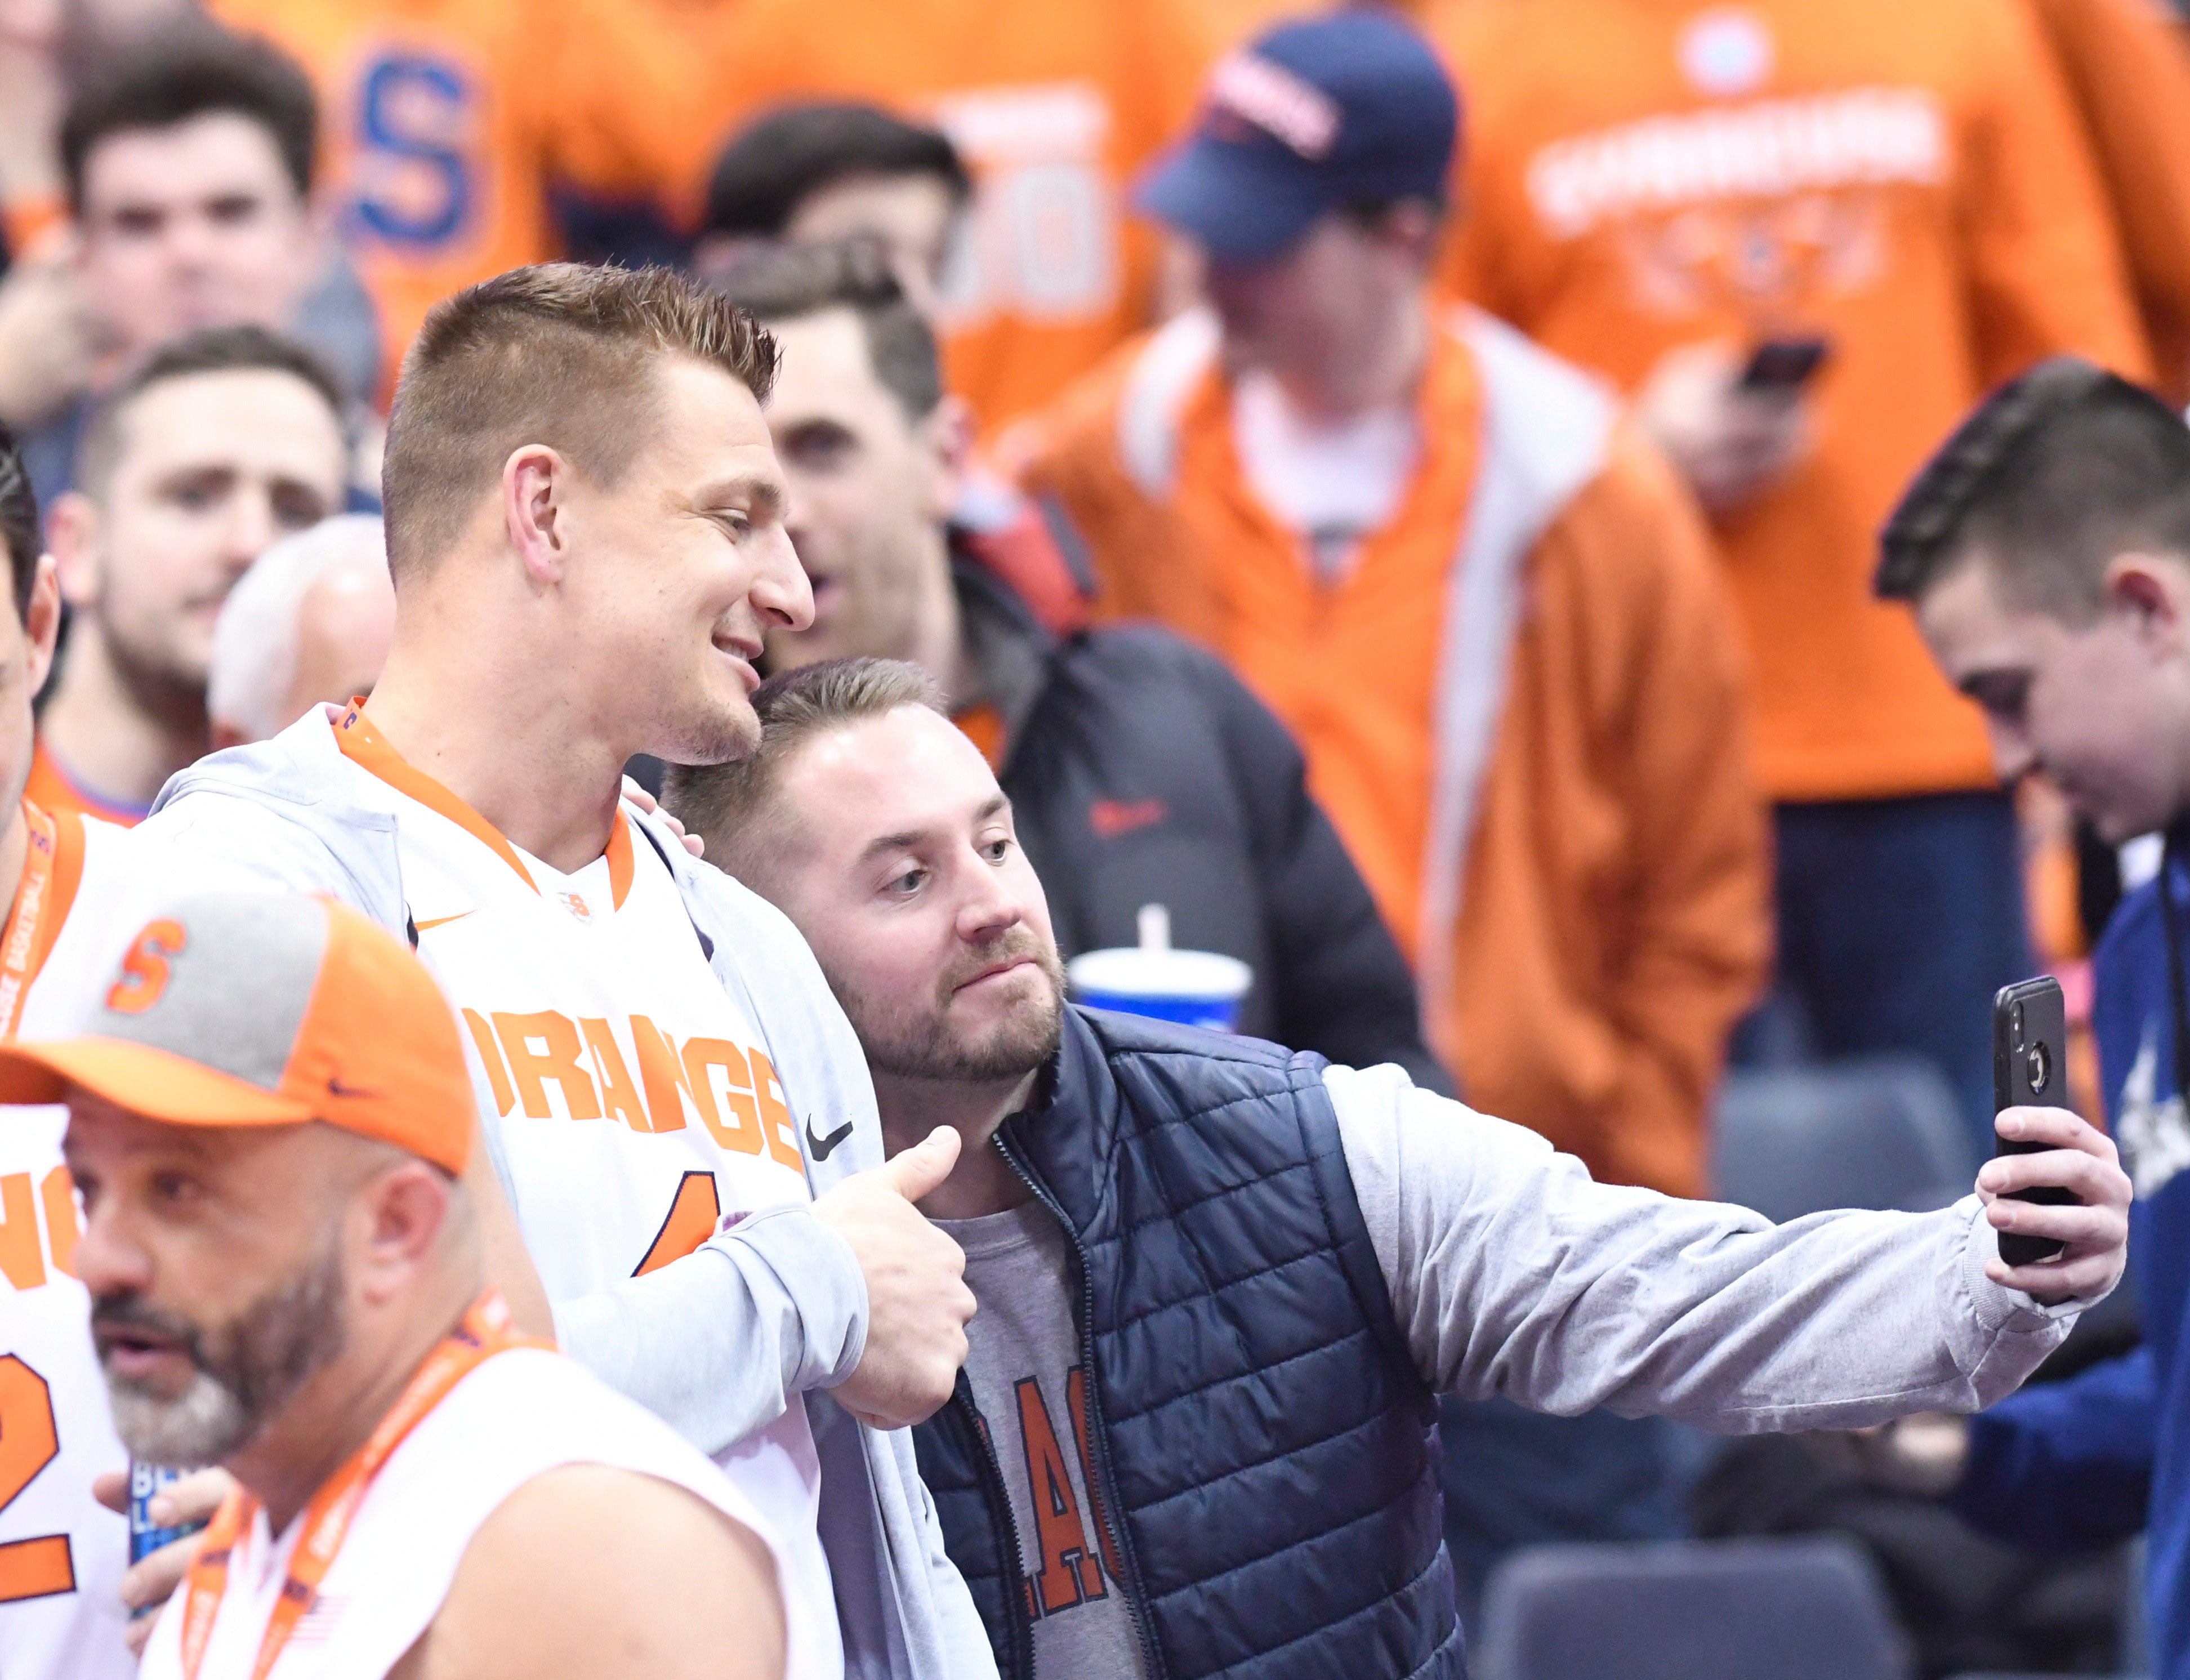 Feb. 23, 2019: Rob Gronkowski poses with a fan for a selfie prior to a men's basketball game between Syracuse and Duke at the Carrier Dome.